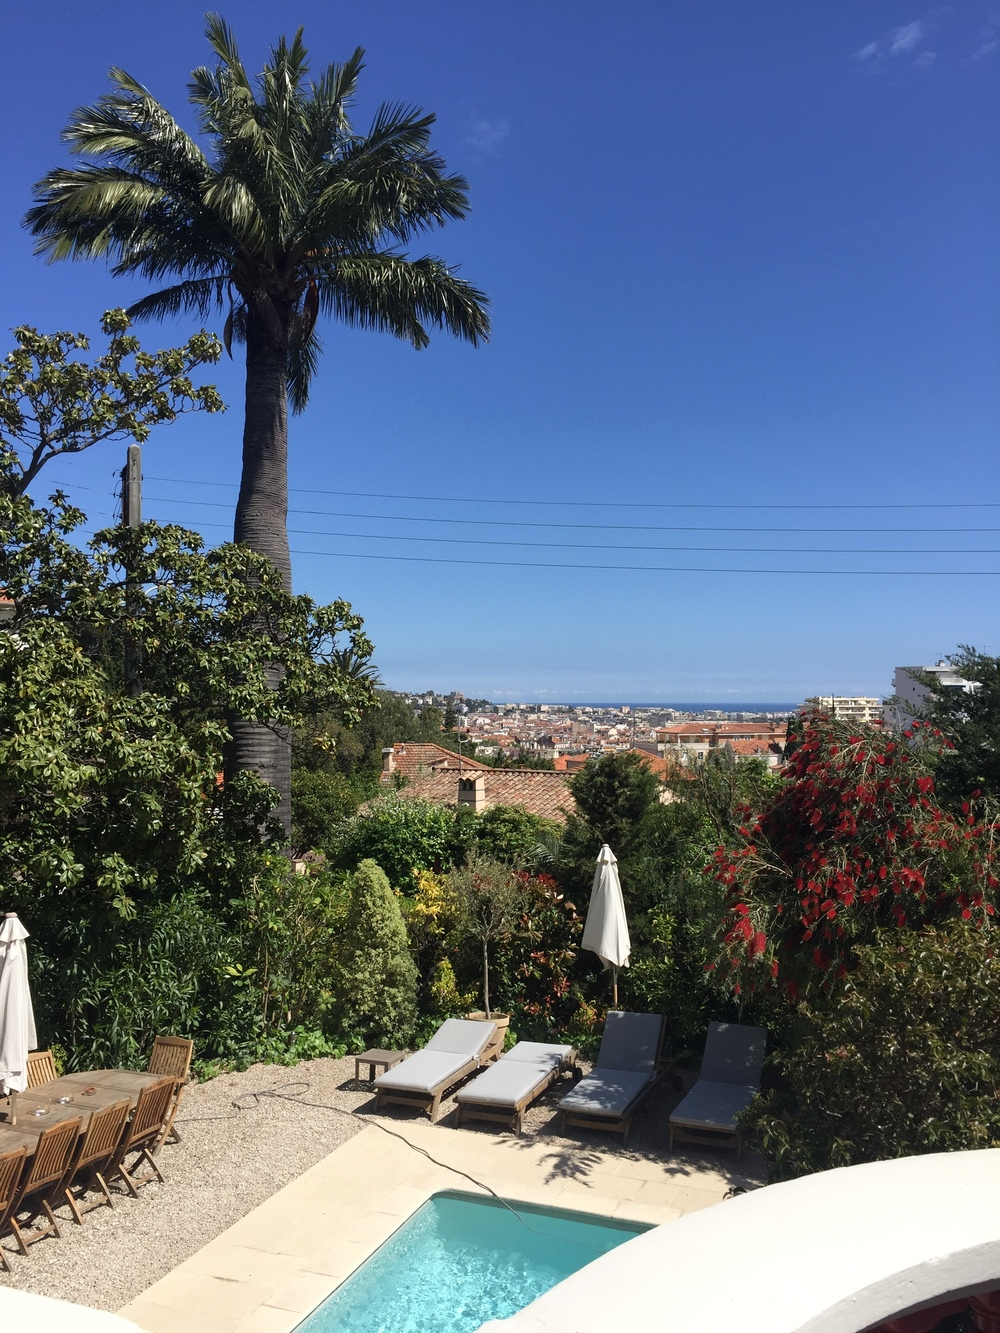 The villa was beautiful - it had a stunning view of Cannes town and the sea.